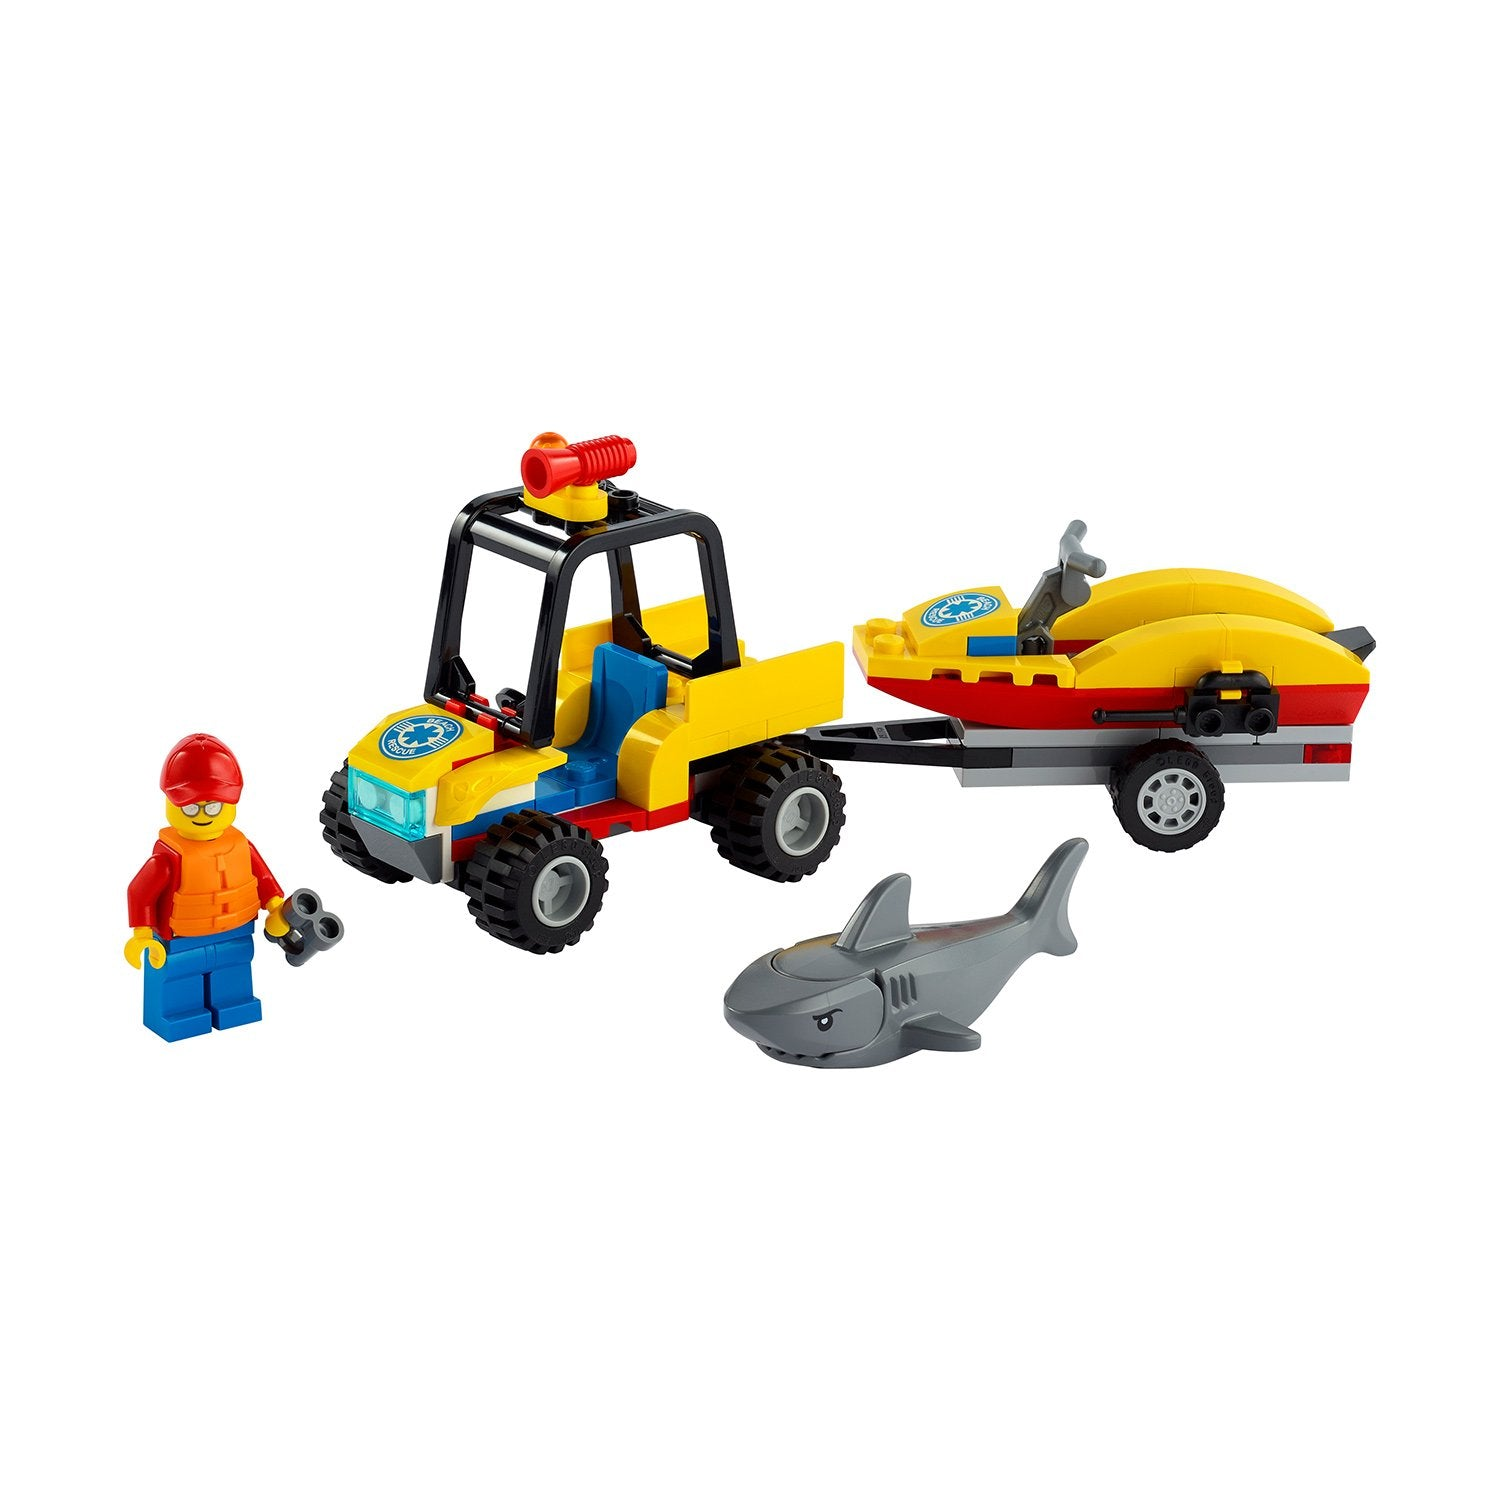 LEGO CITY Beach Rescue ATV